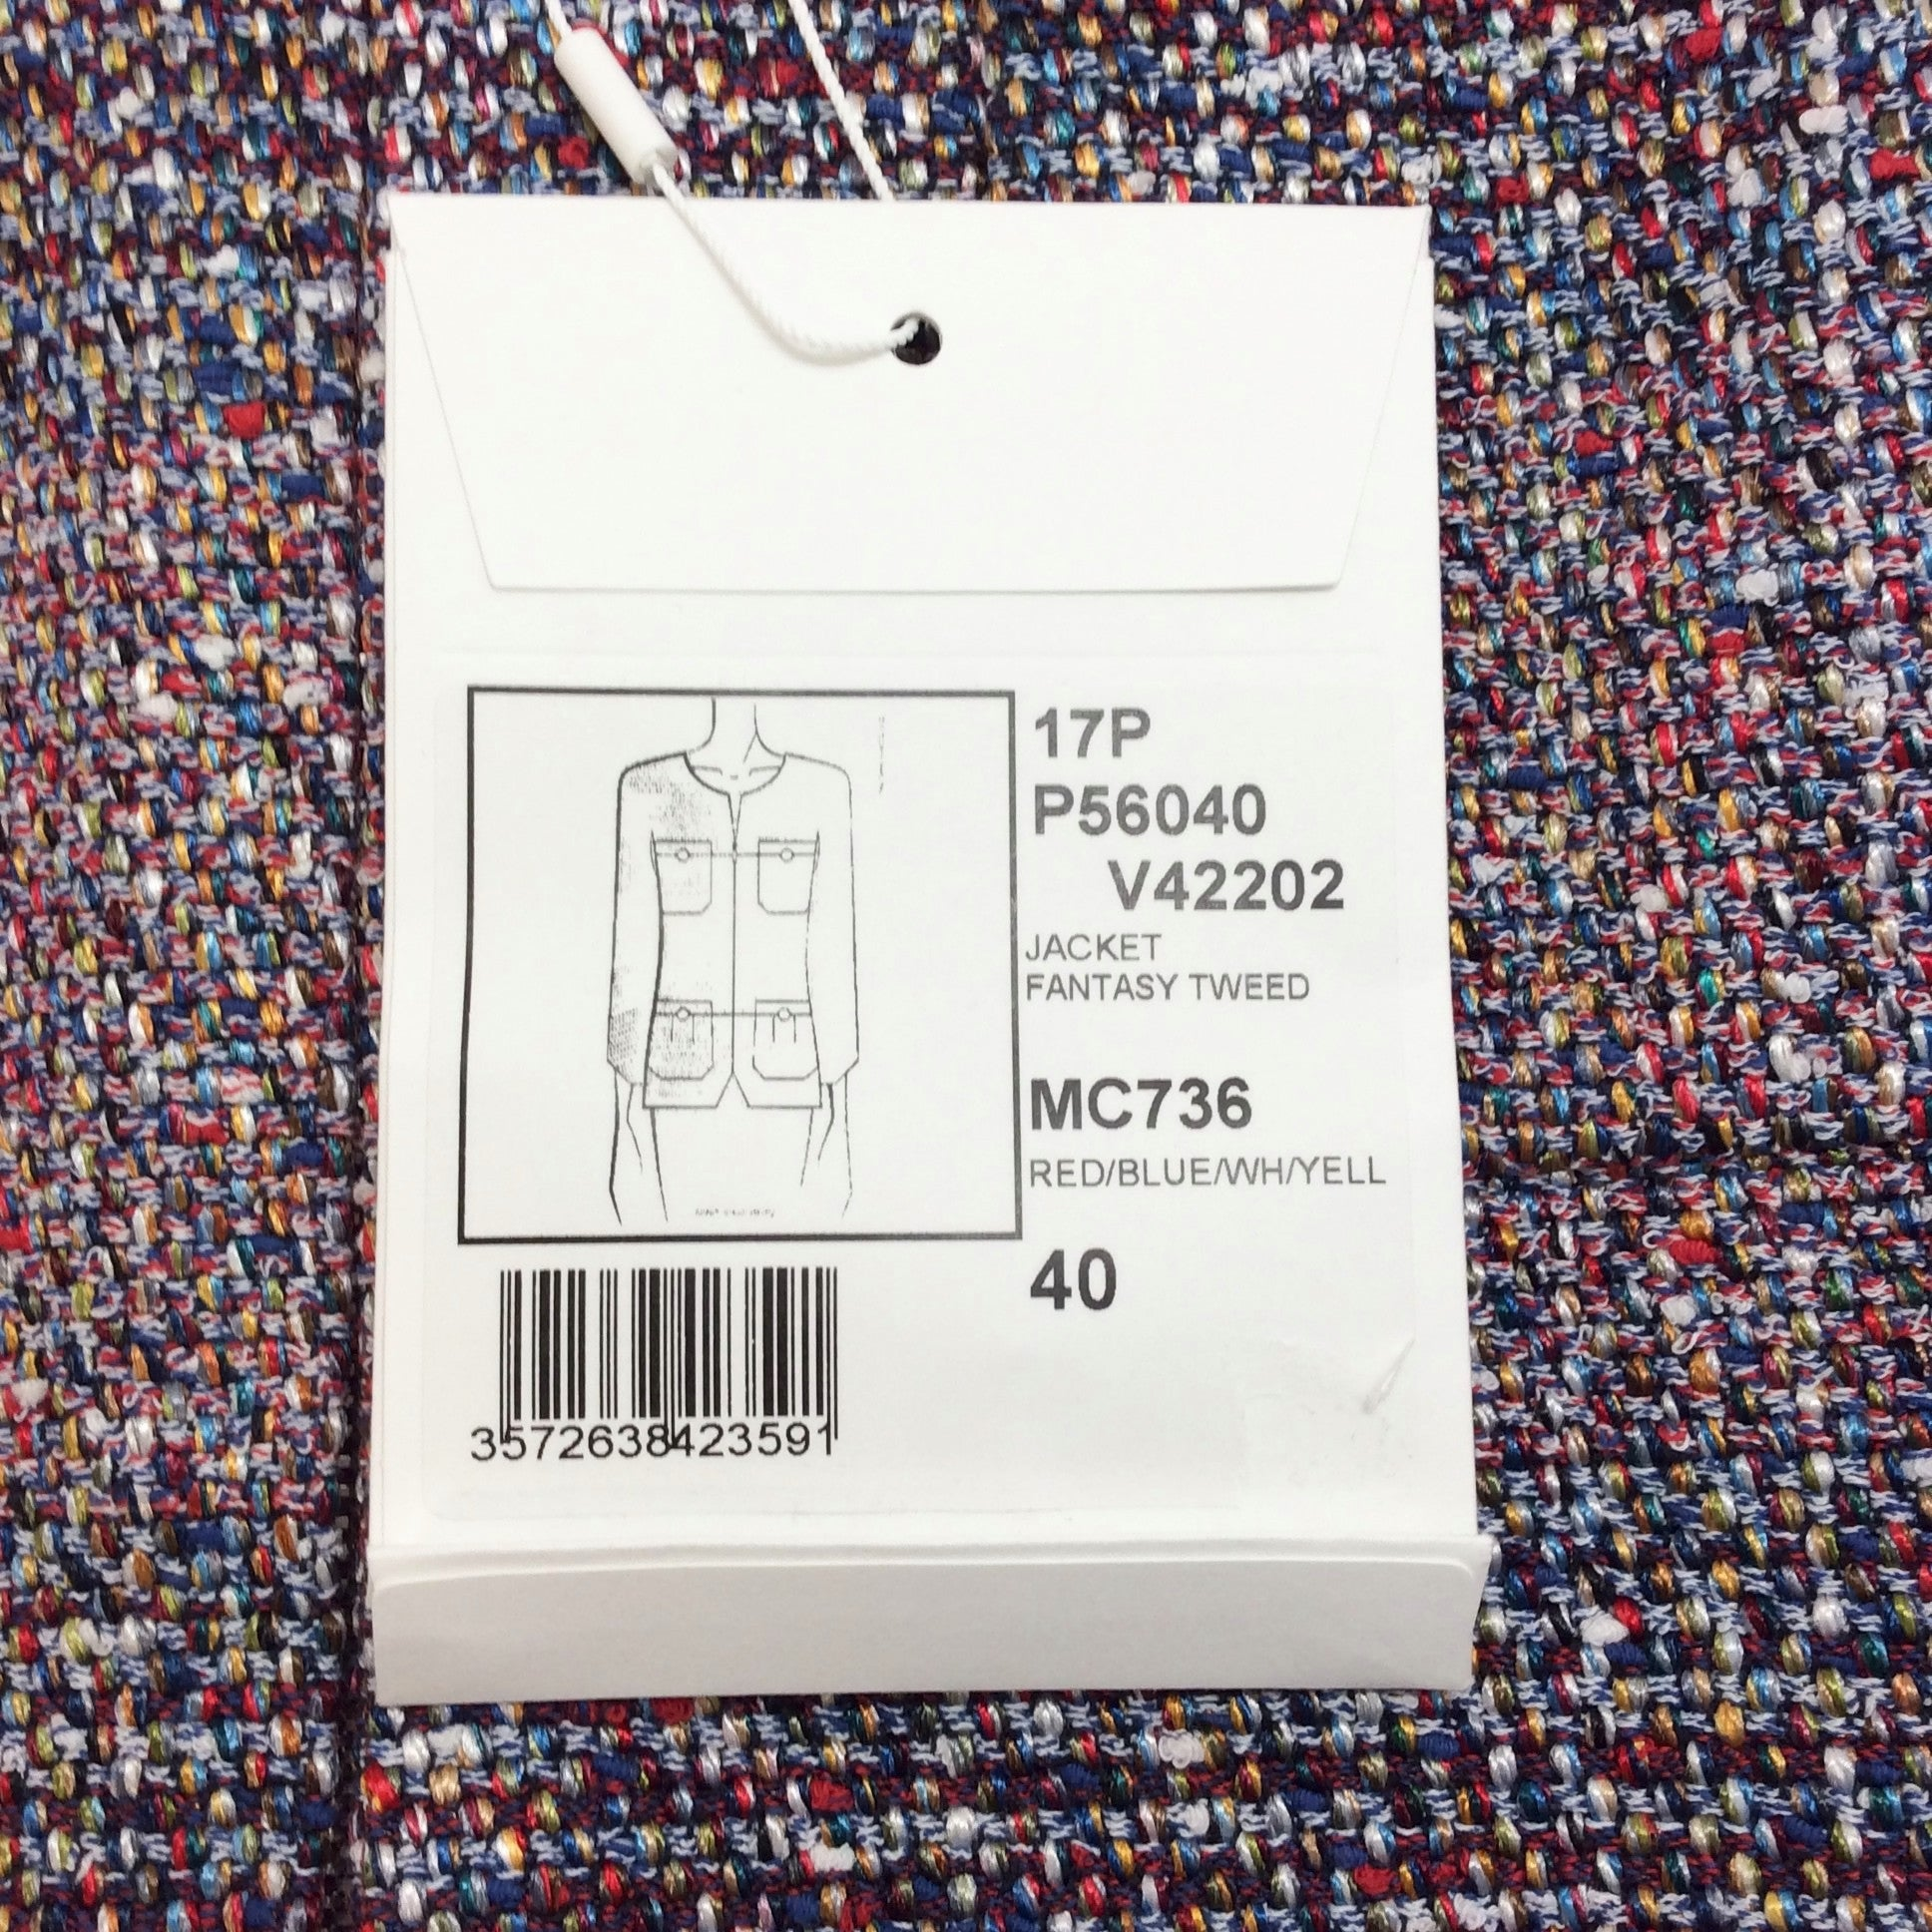 Chanel Multicolor 17P Fantasy Tweed Blazer